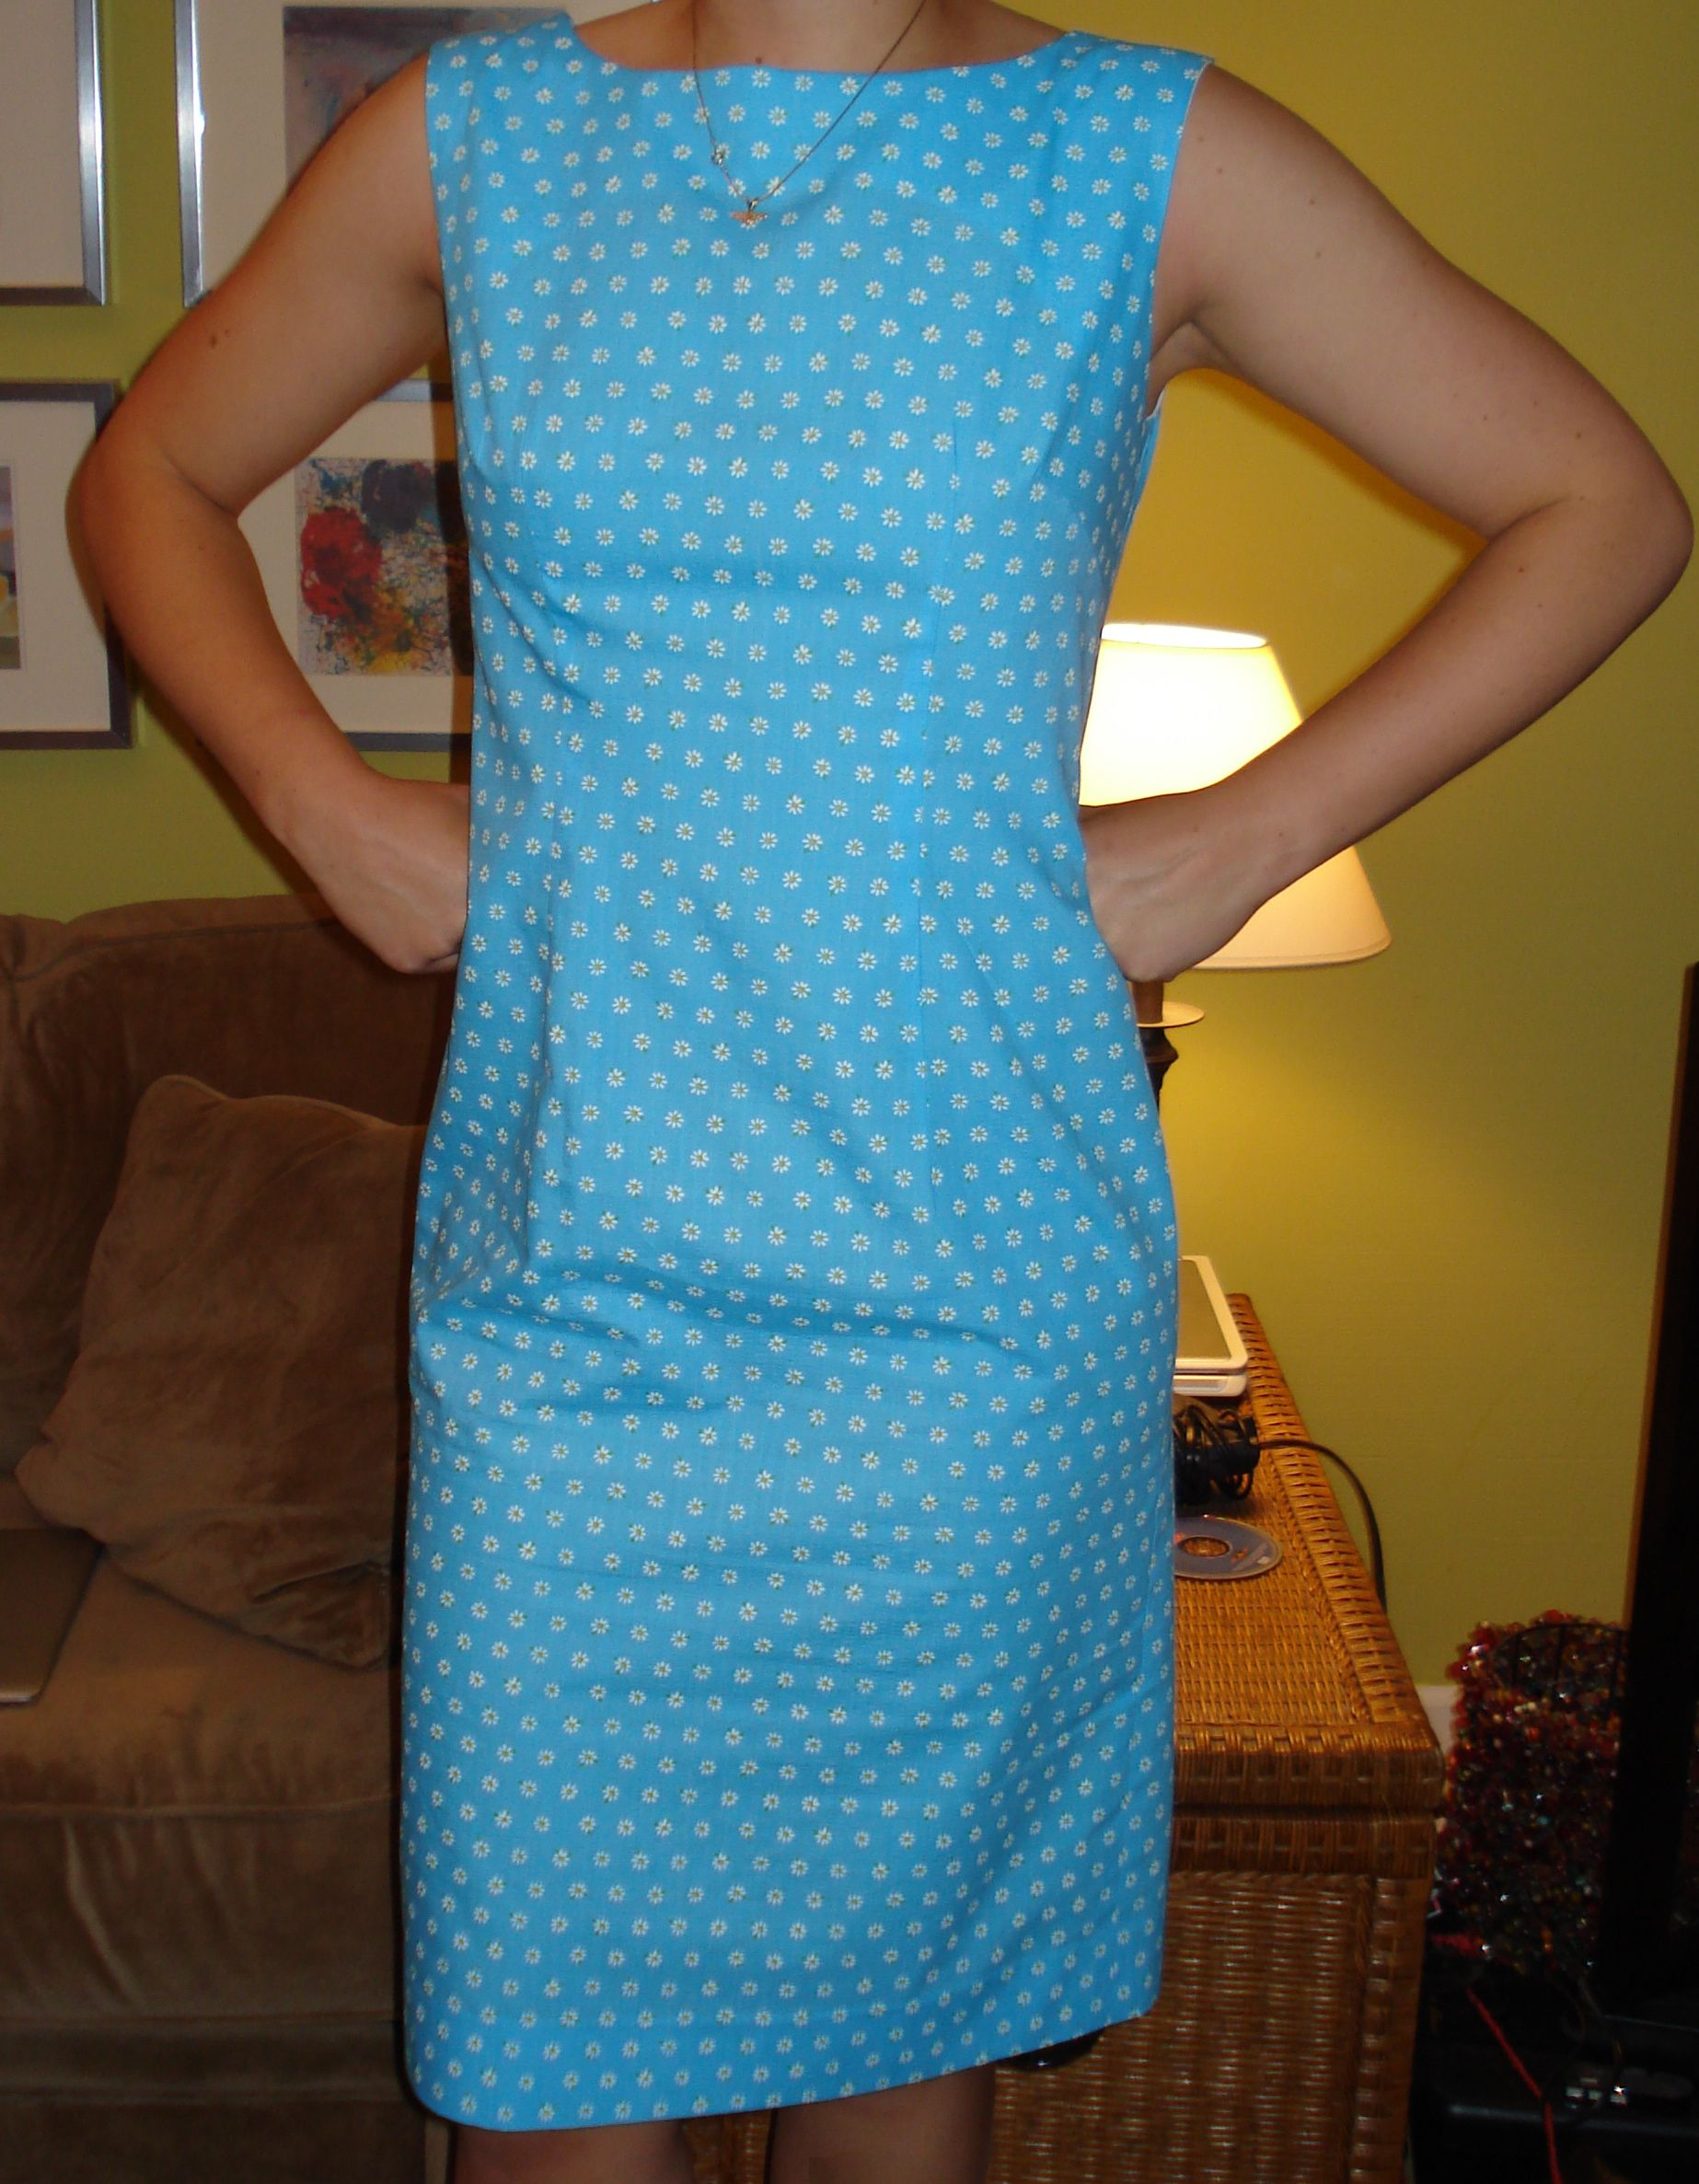 1st attempt - McCall's 2401 - daisy seersucker.  Have since adjusted fit.